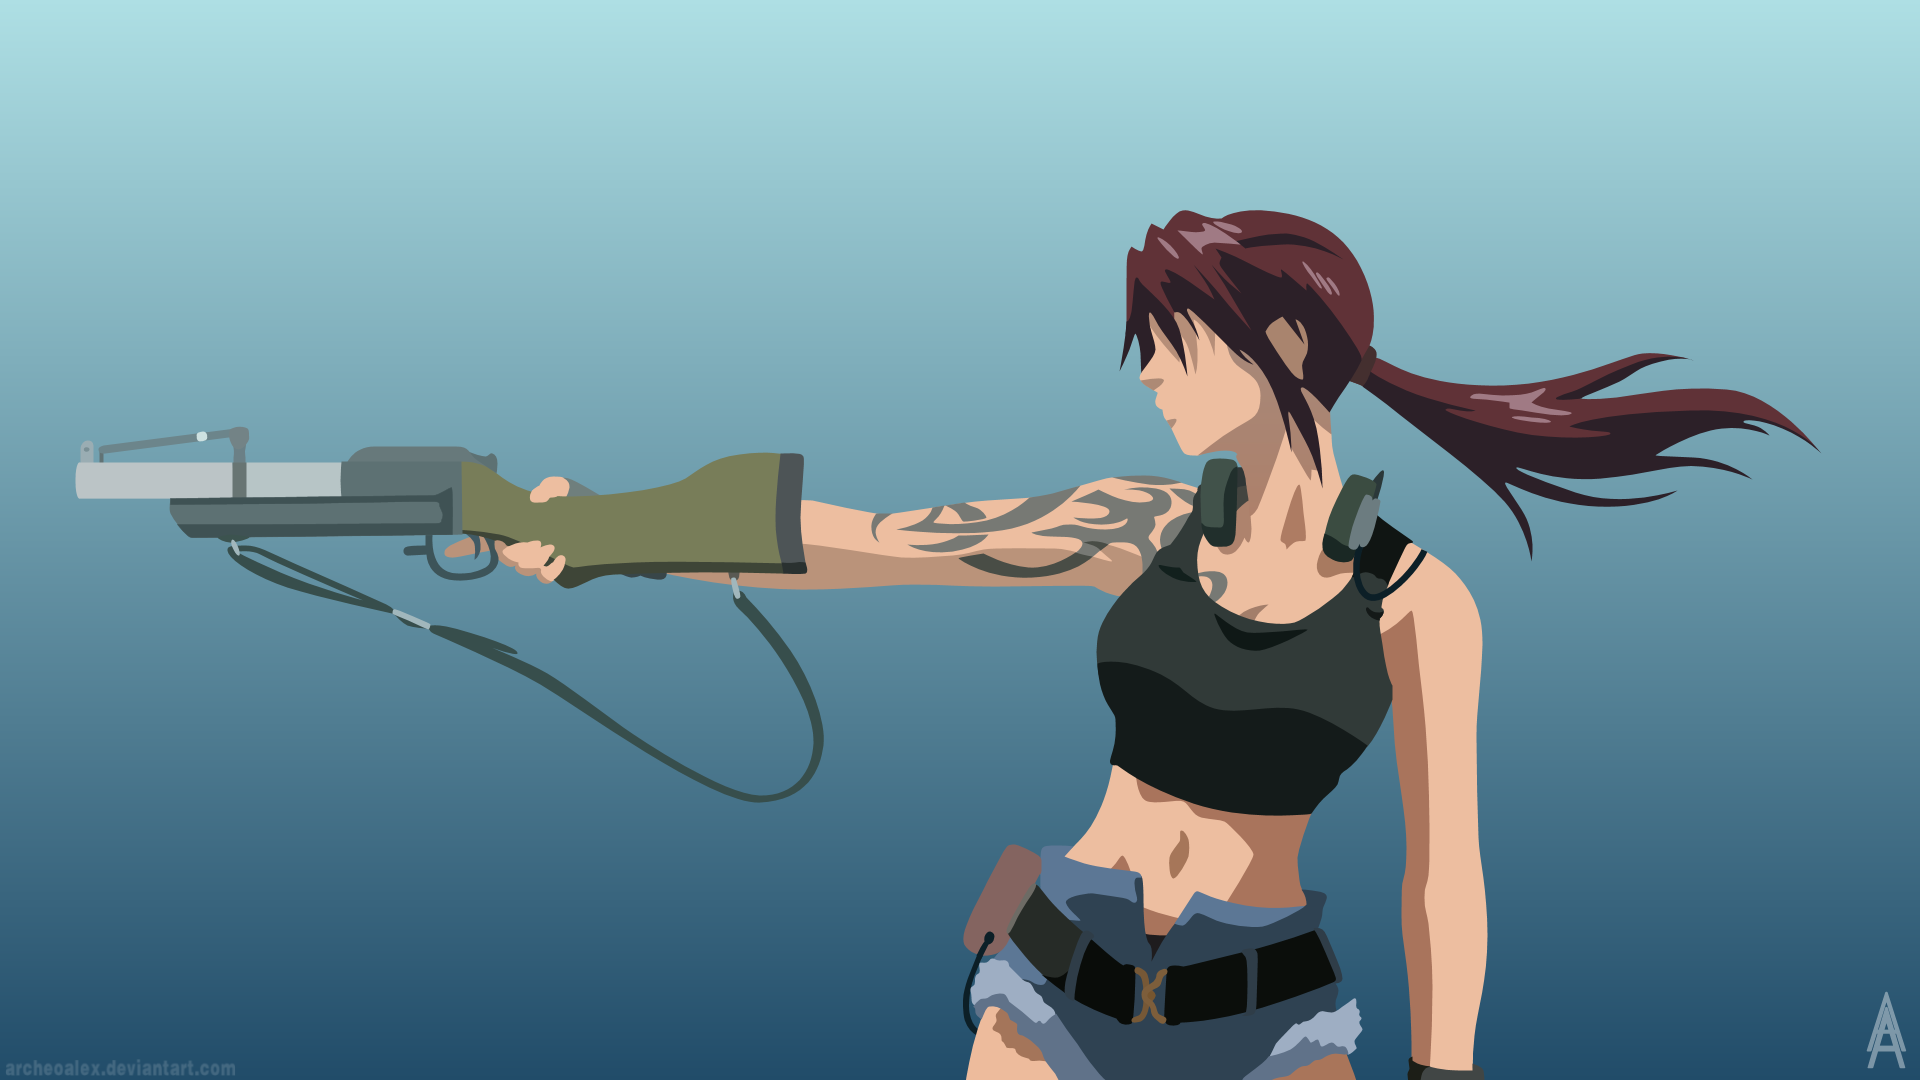 Black Lagoon Revy Minimalist Wallpaper By Archeoalex On Deviantart